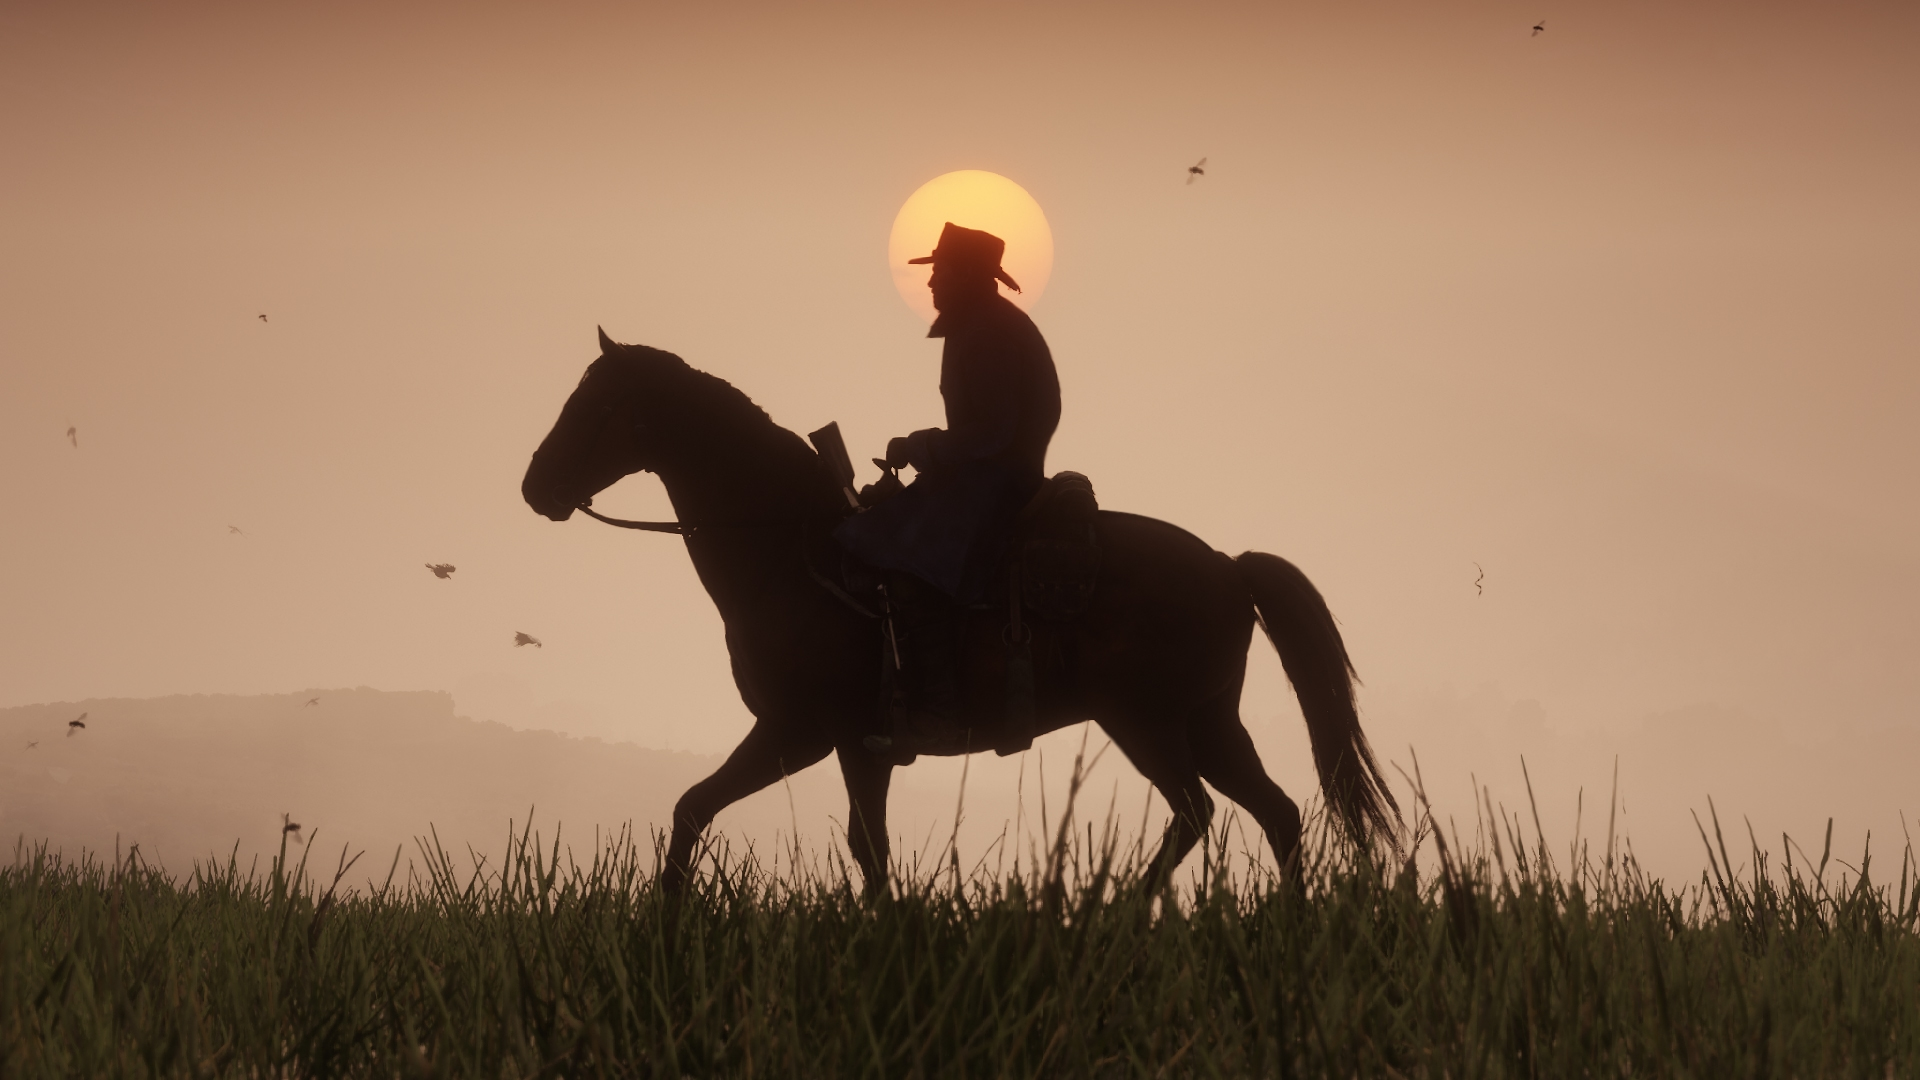 Red Dead Redemption 2 | PS4/X1 | 10/26/2018 750001bd09b2452ef0d01fab0965ff76d63c535c